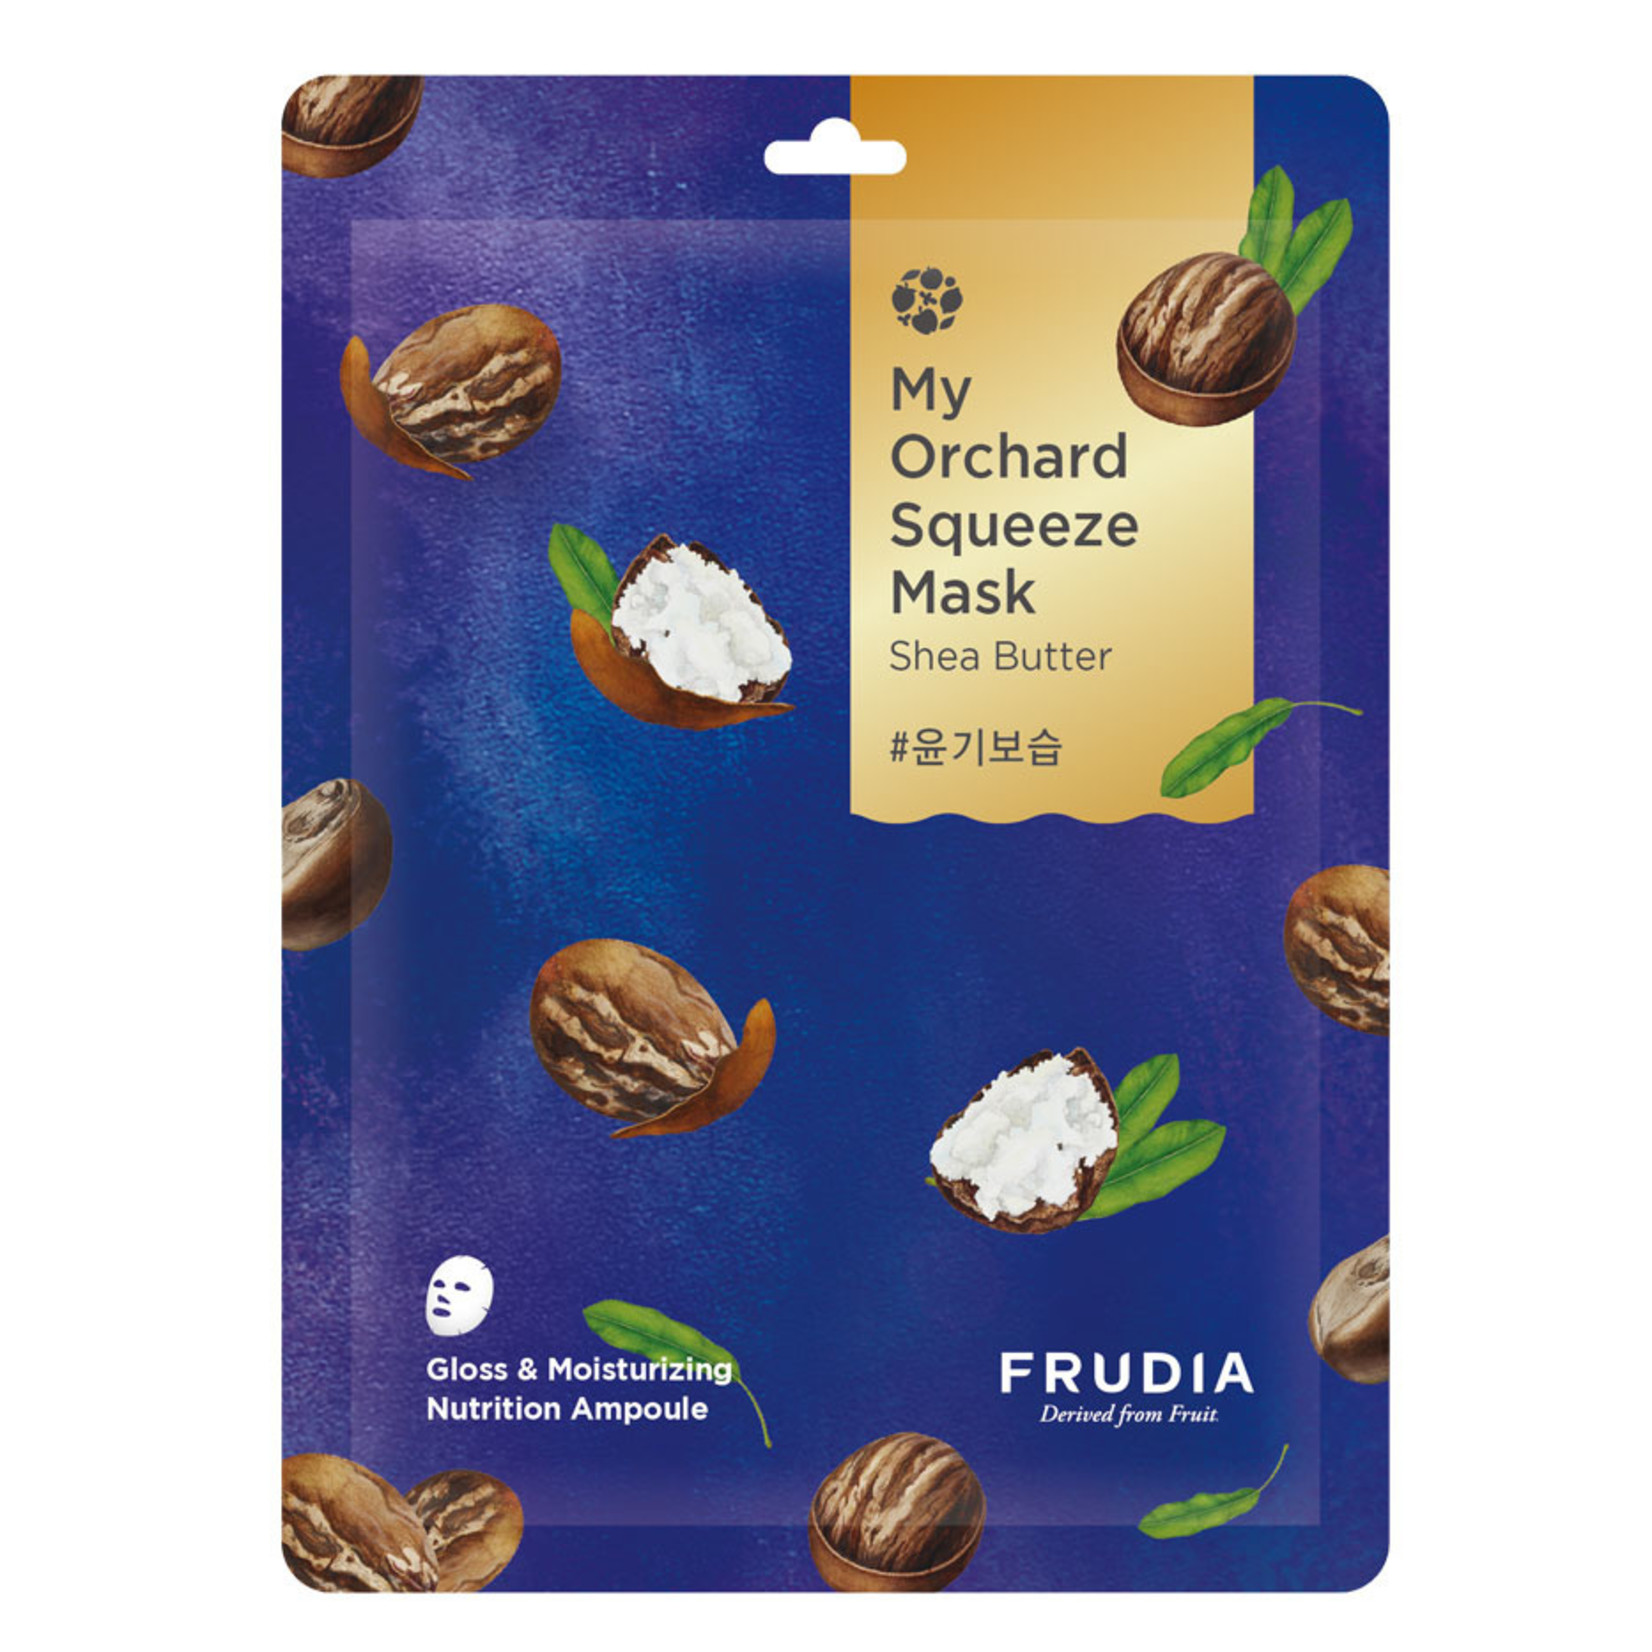 Frudia My Orchard Squeeze Mask Shea Butter 10pcs